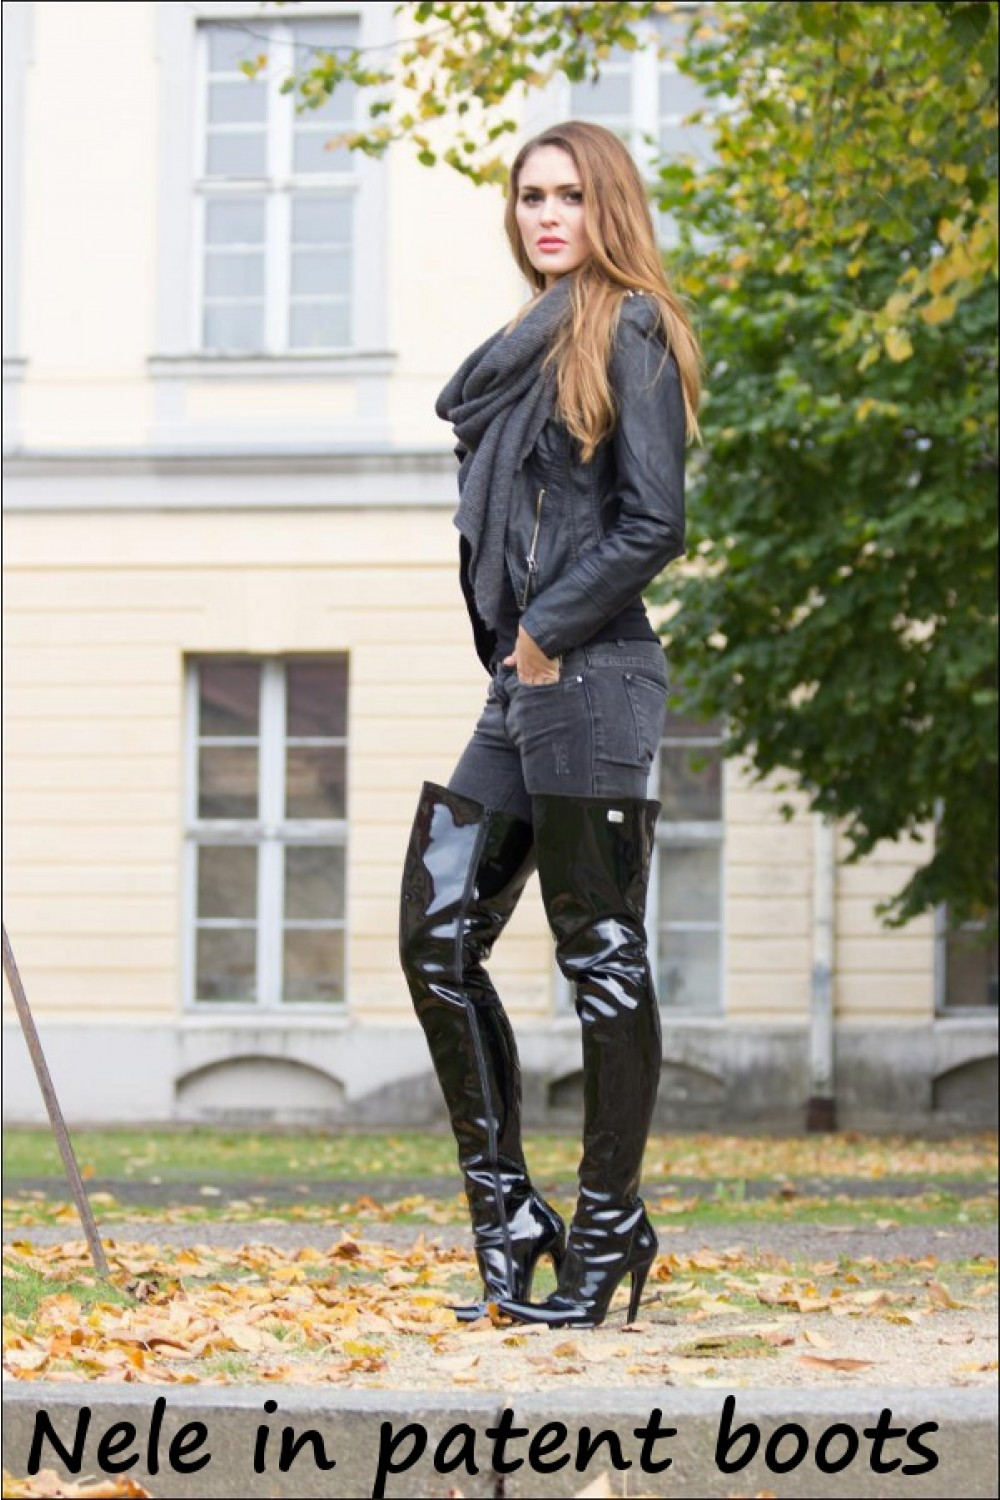 Patent Crotchhigh Boots, Jeans